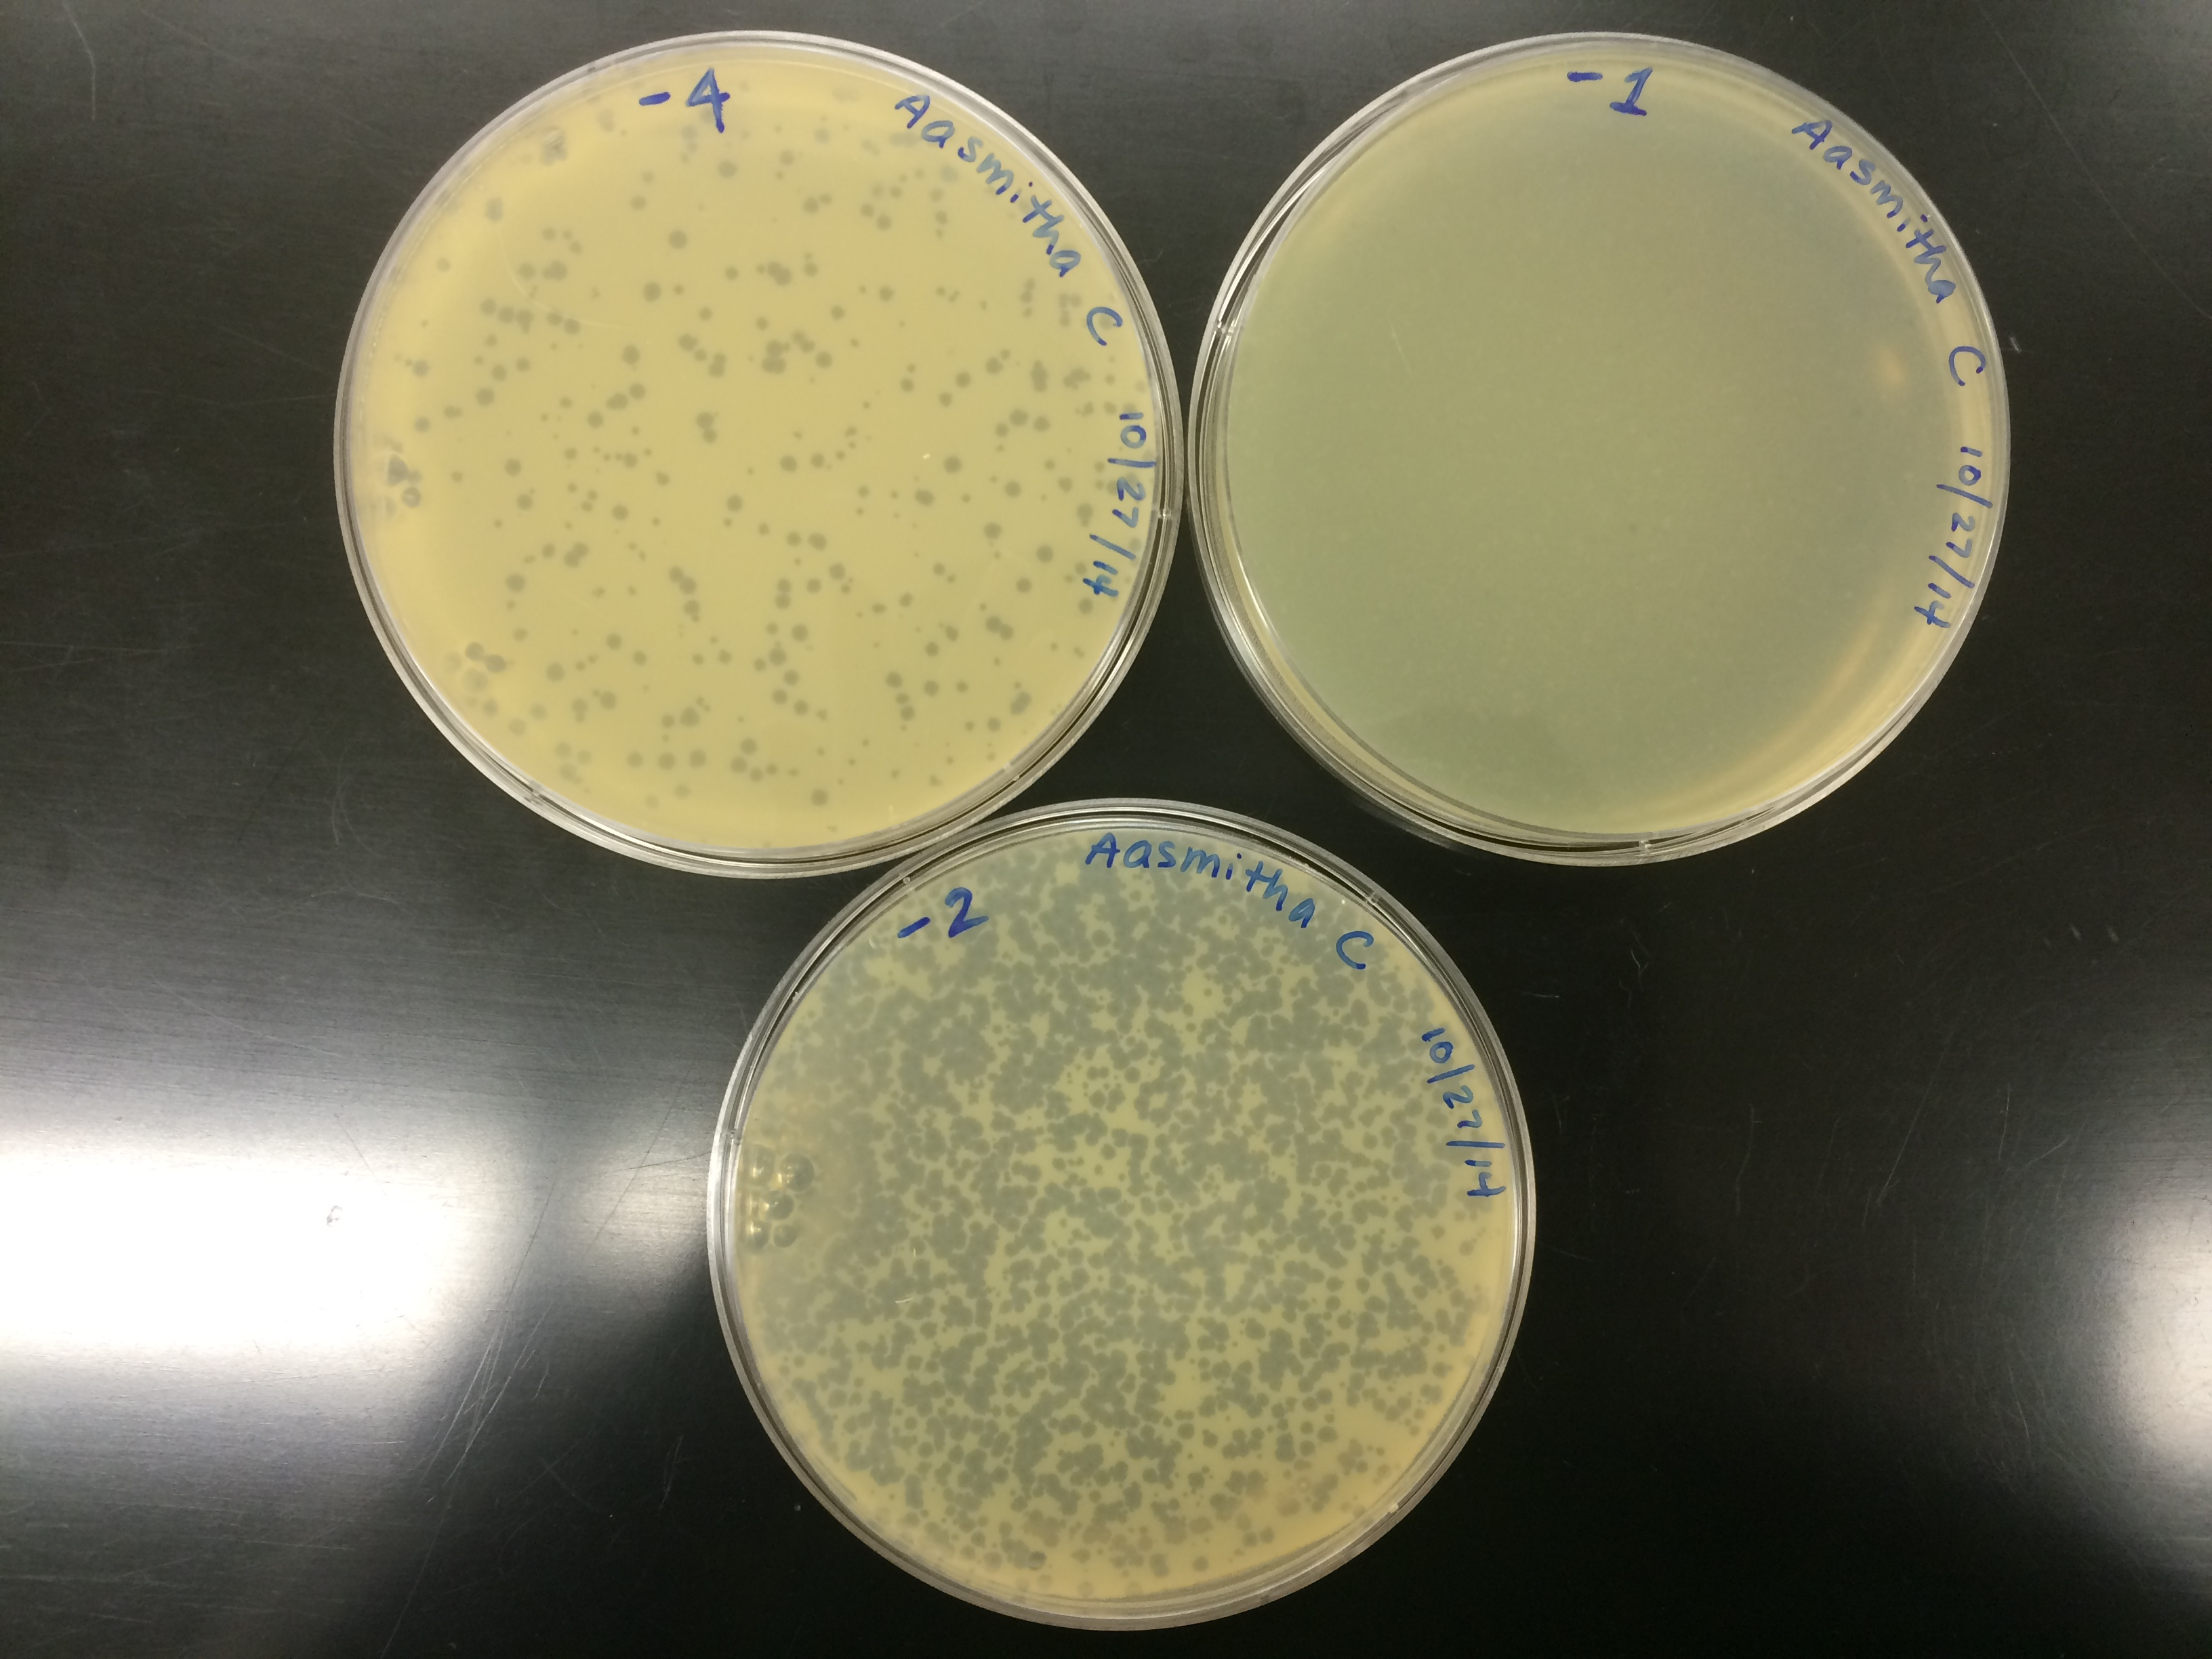 bacteriophage titer lab Experiment to cultivate and enumerate a bacteriophage principle: a suspension of bacteria, susceptible to a bacteriophage (virus that infects bacteria) is seeded with that bacteriophage and allowed to grow as a confluent lawn on an agar plate.